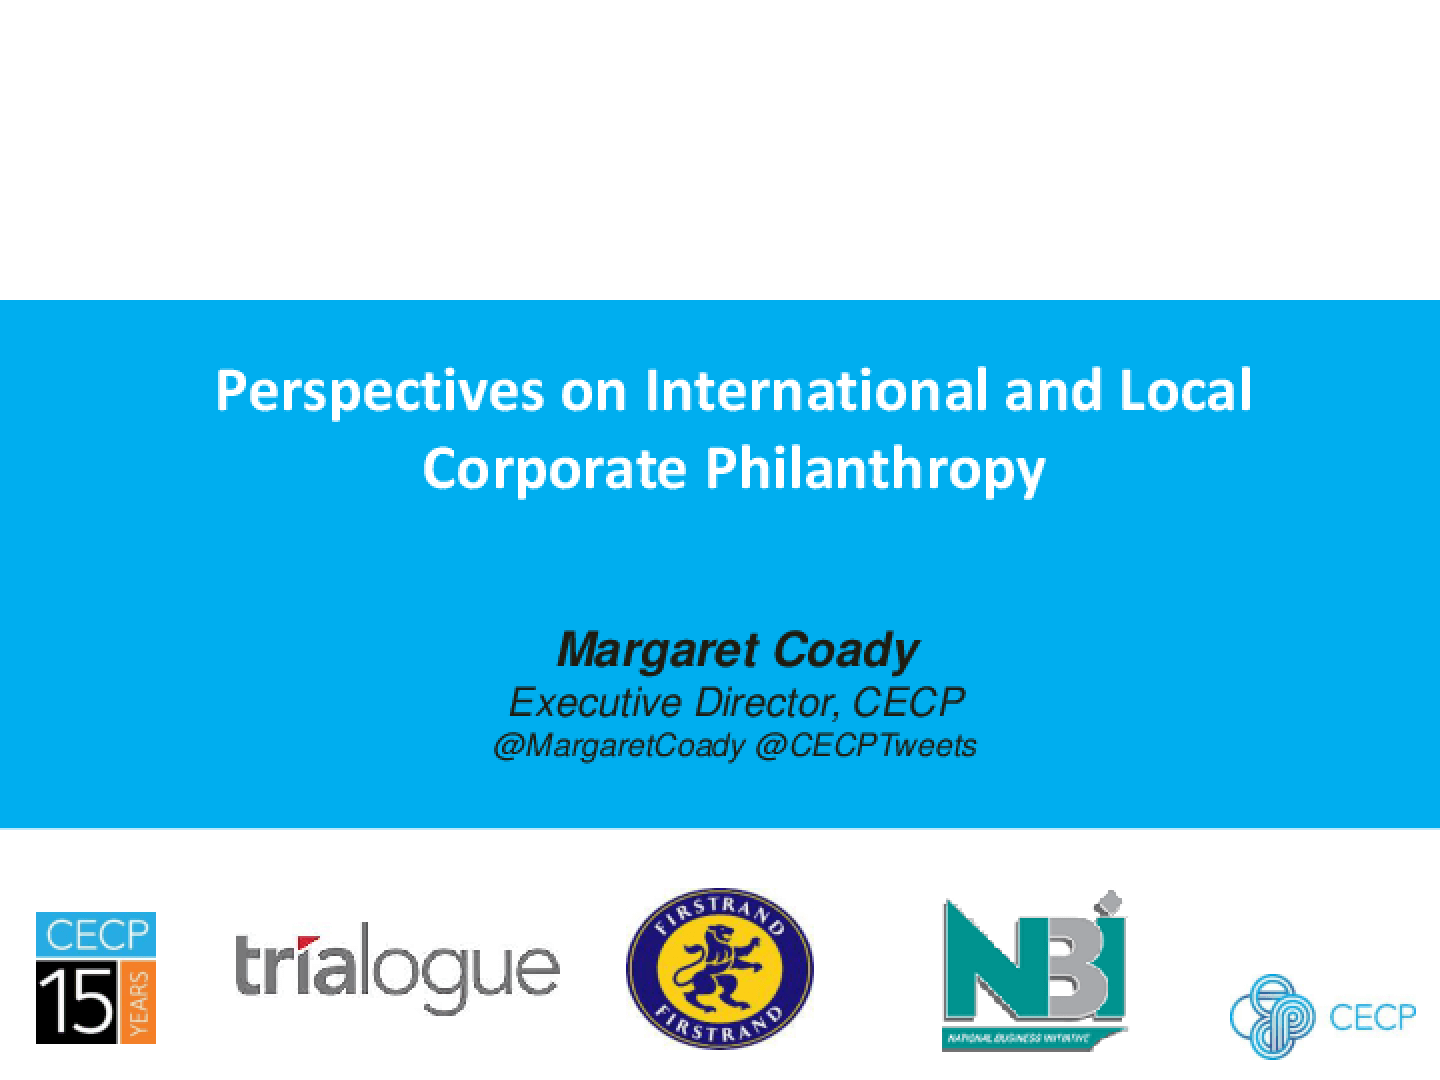 Perspectives on International and Local Corporate Philanthropy